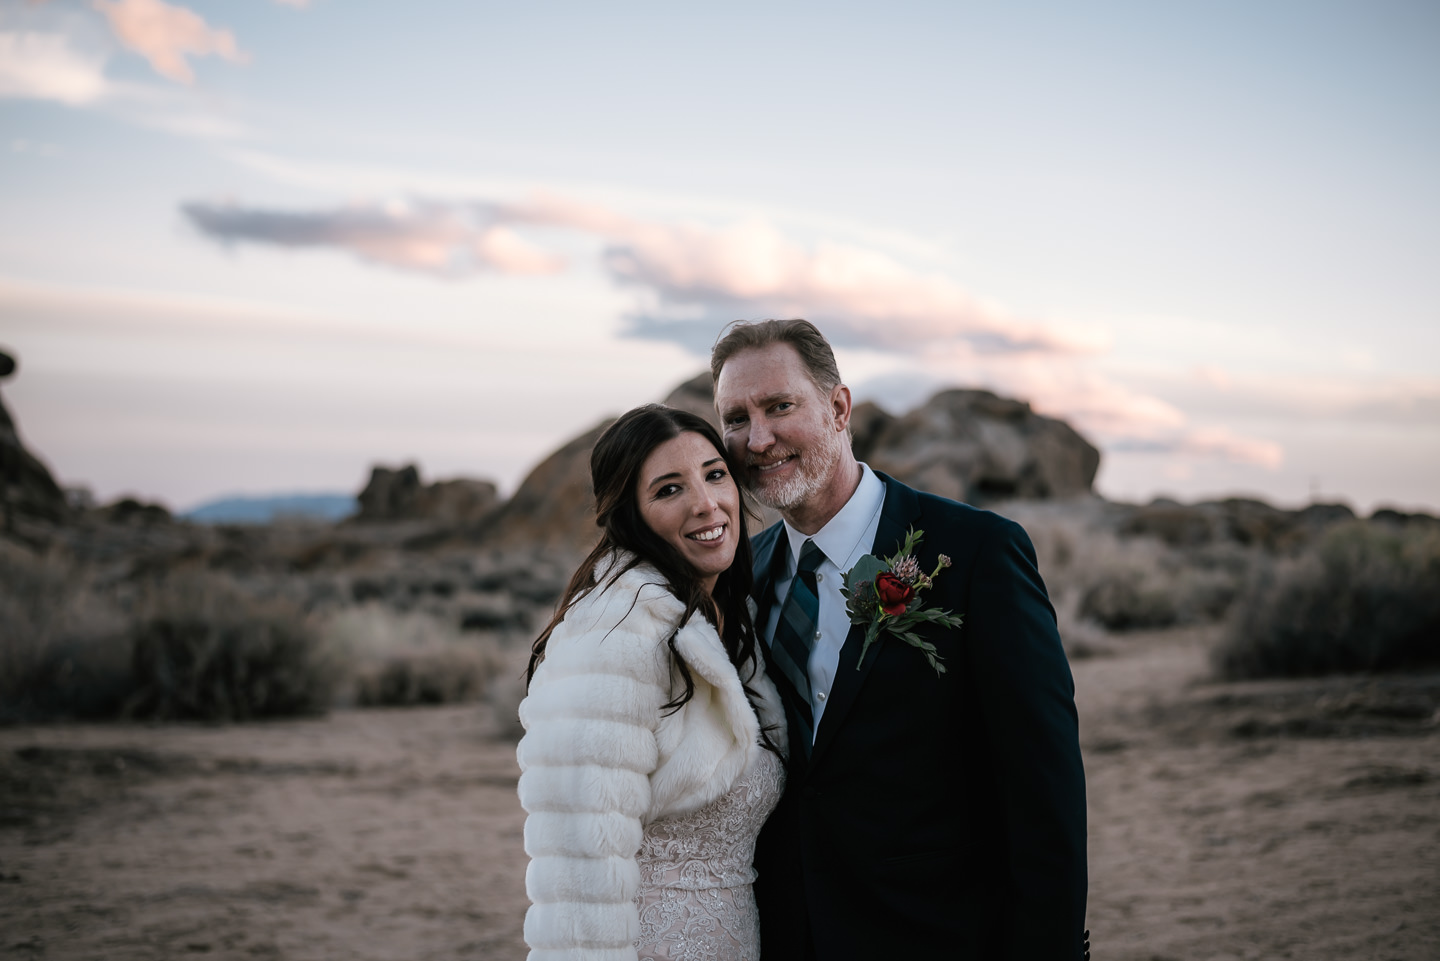 alabama-hills-california-elopement (74 of 84).jpg